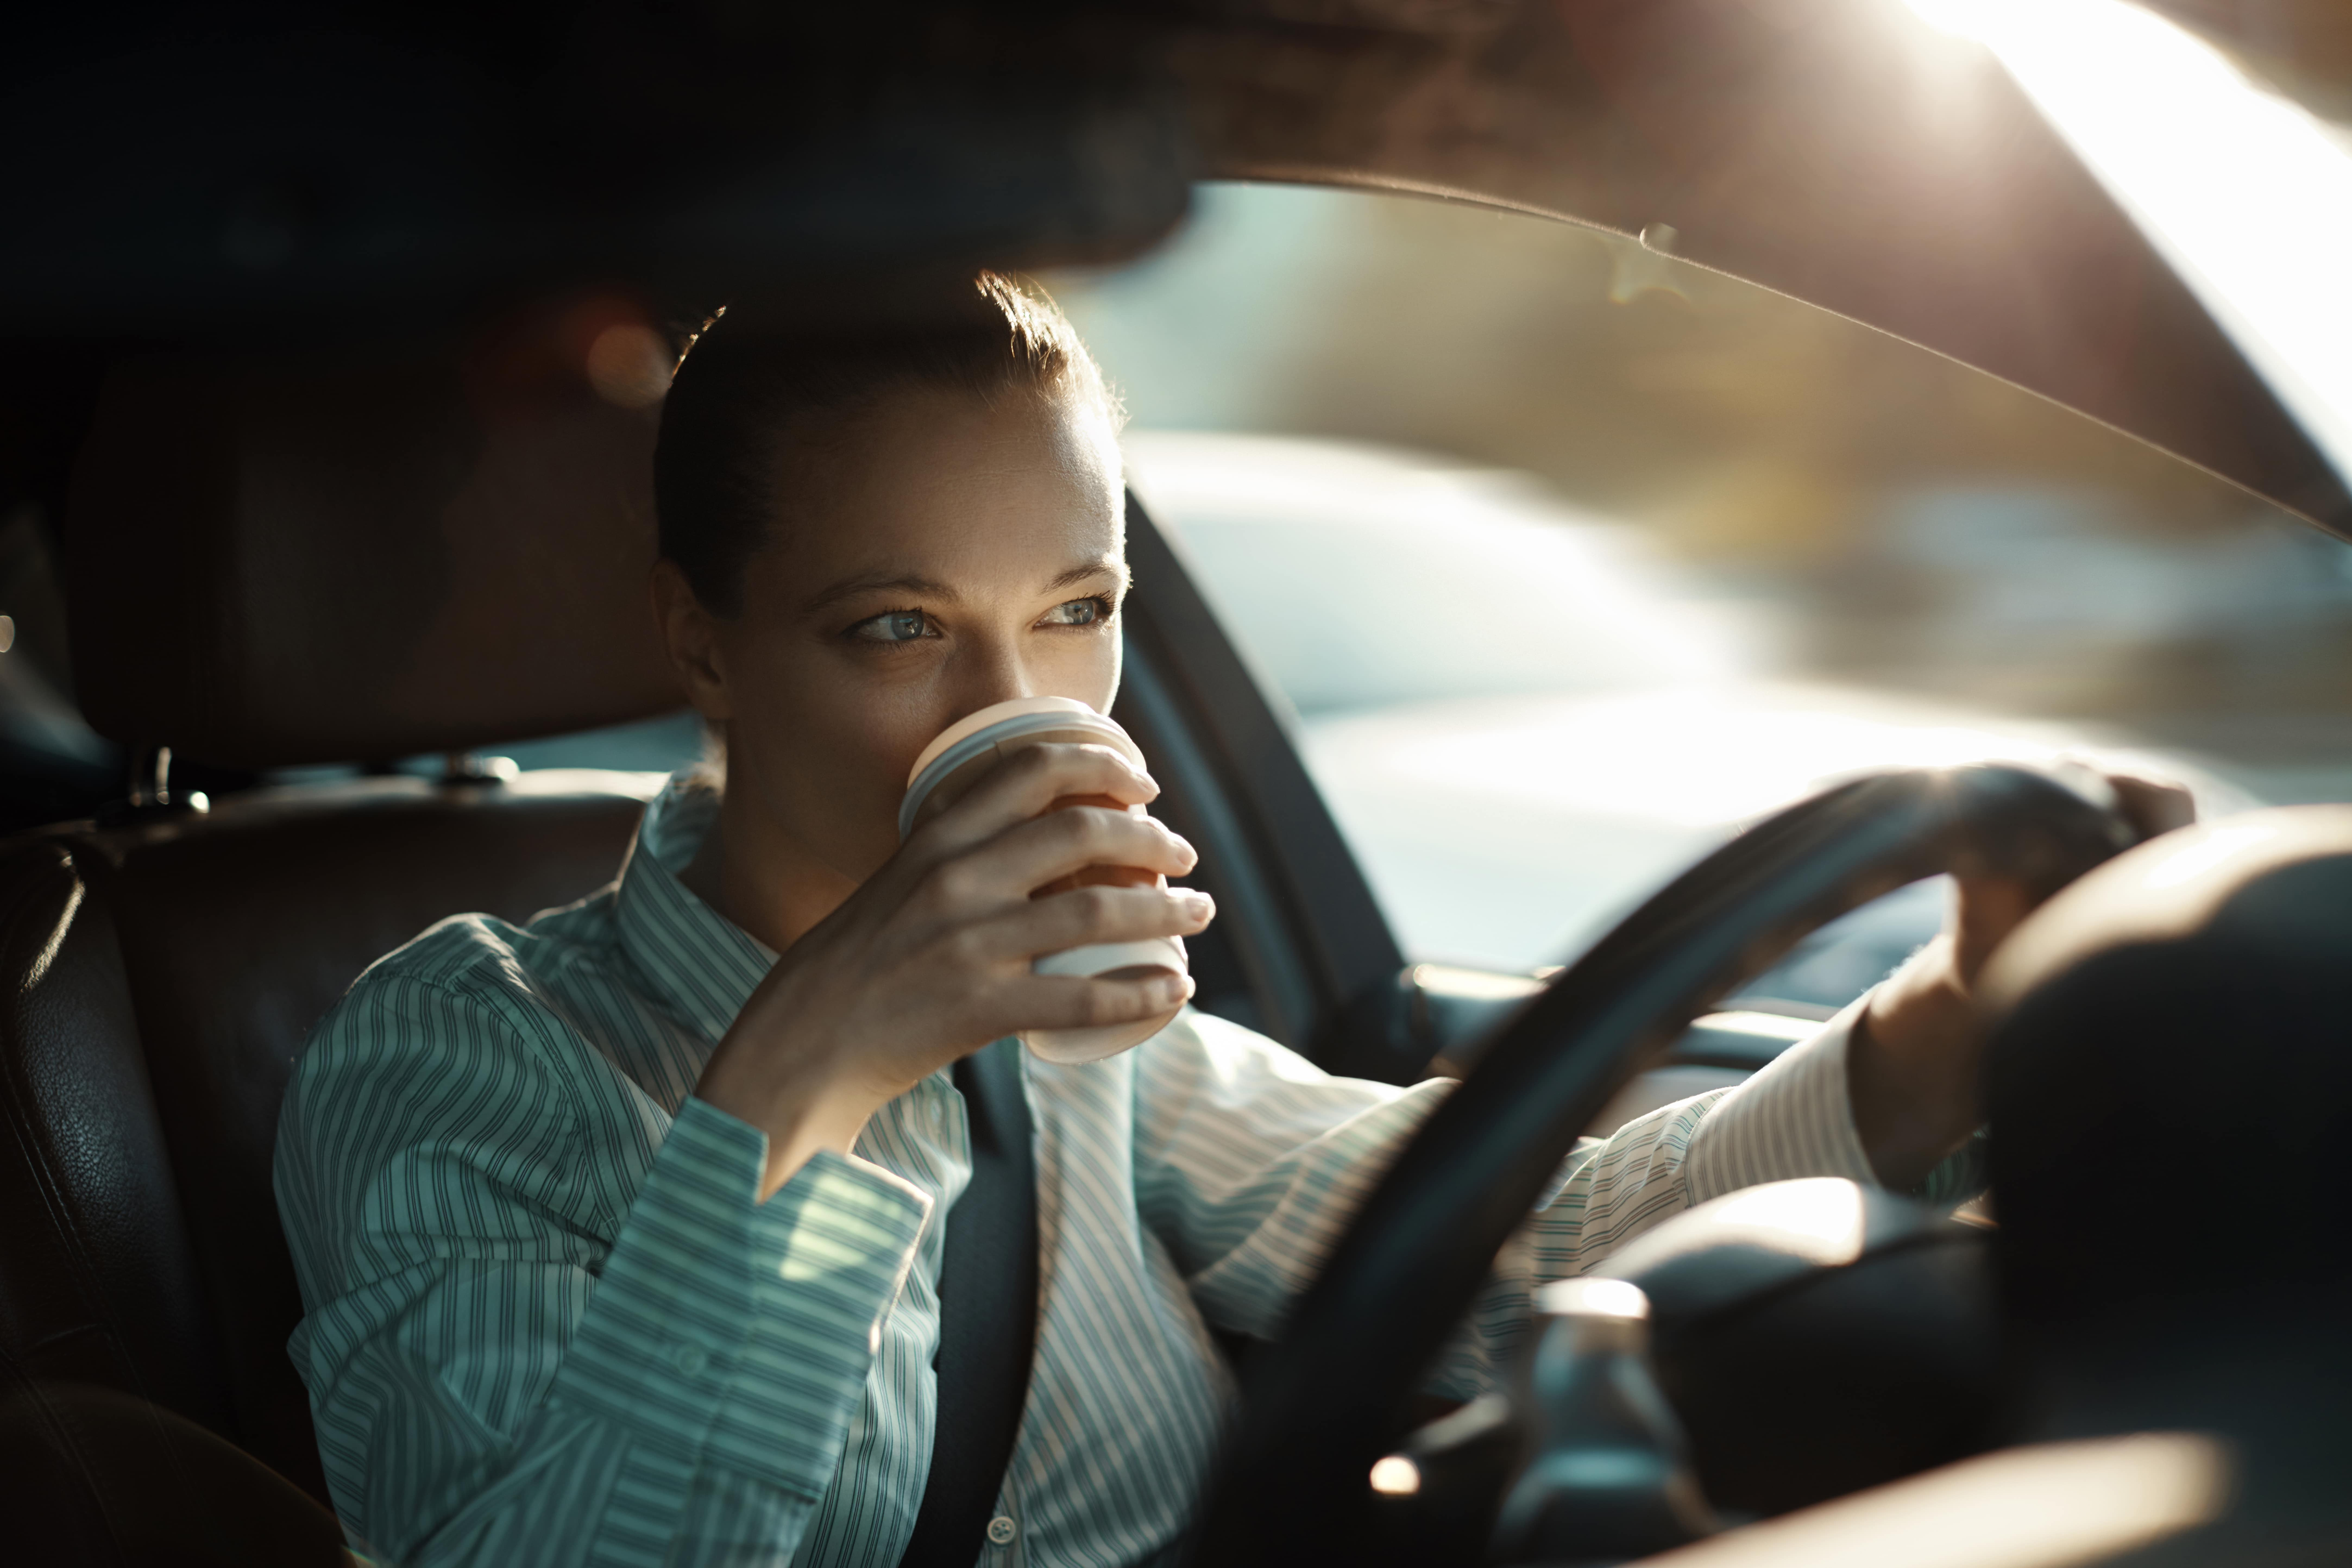 Woman sipping coffee in her vehicle